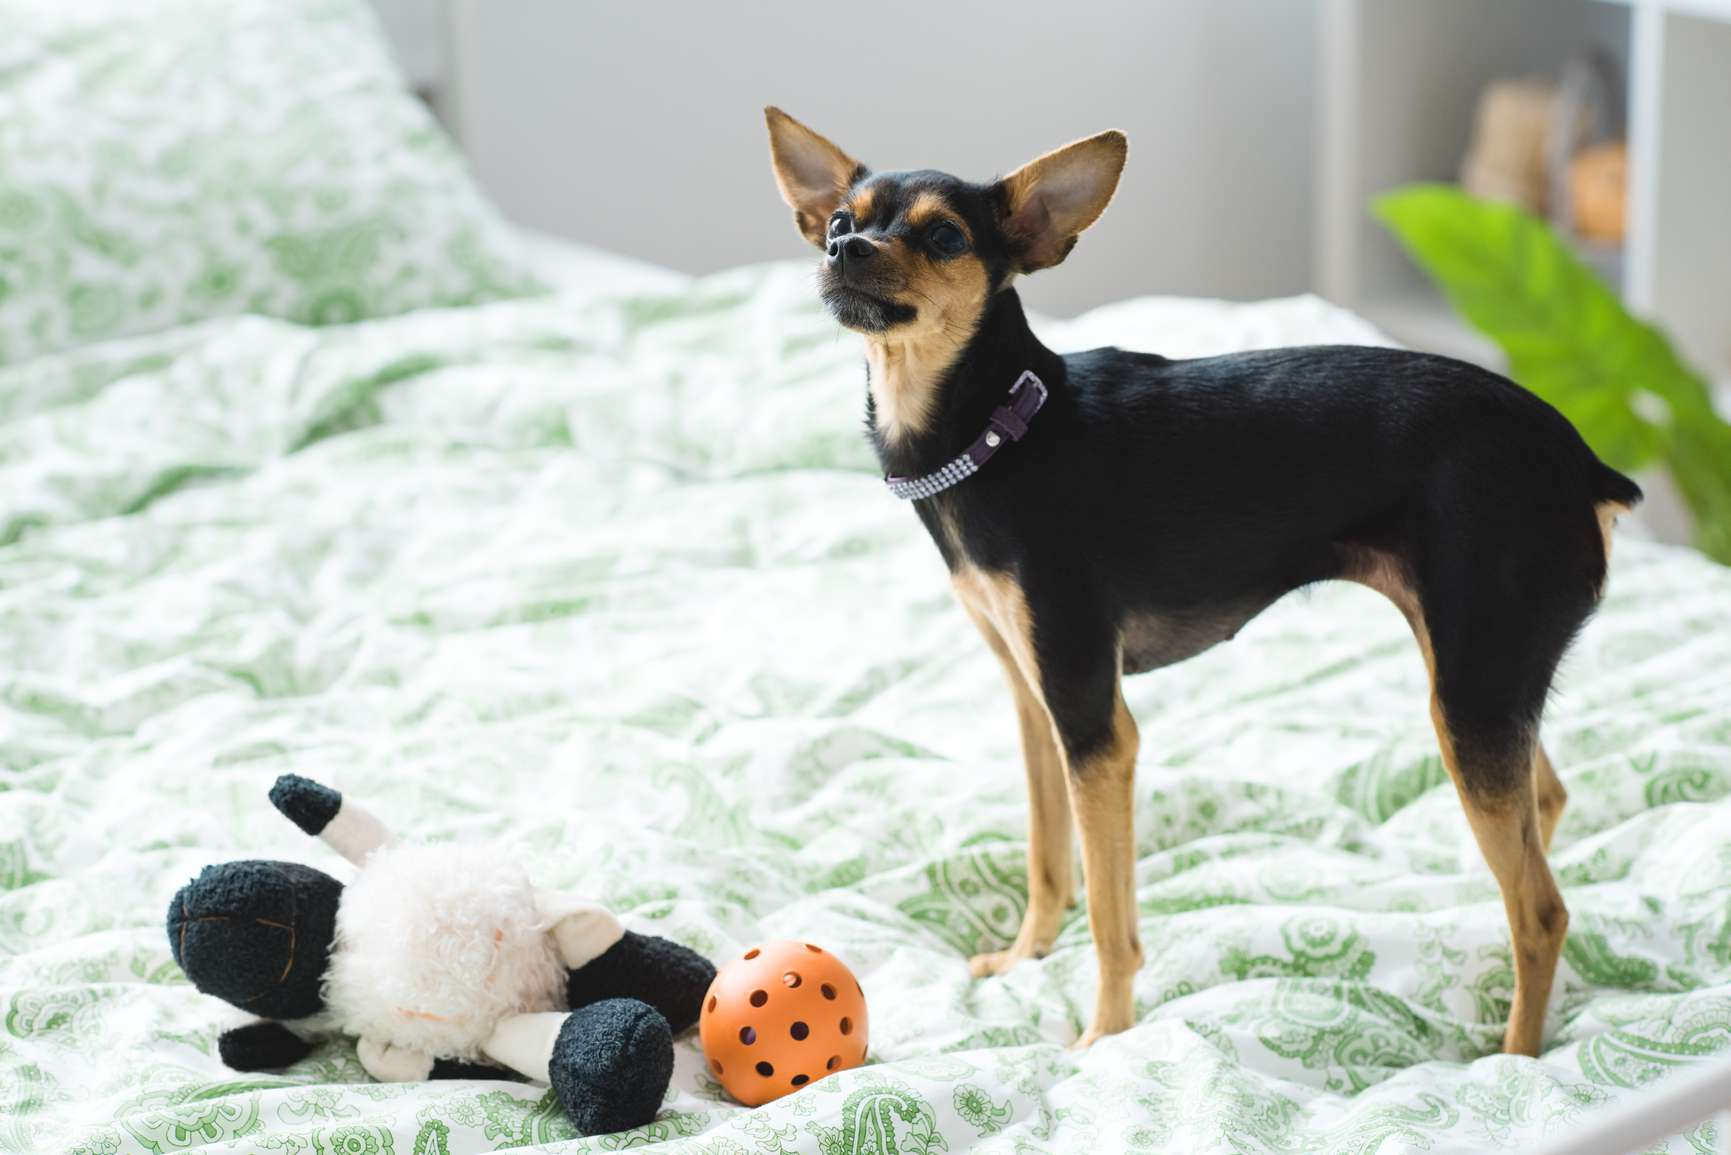 A Miniature Pinscher on a bed with toys